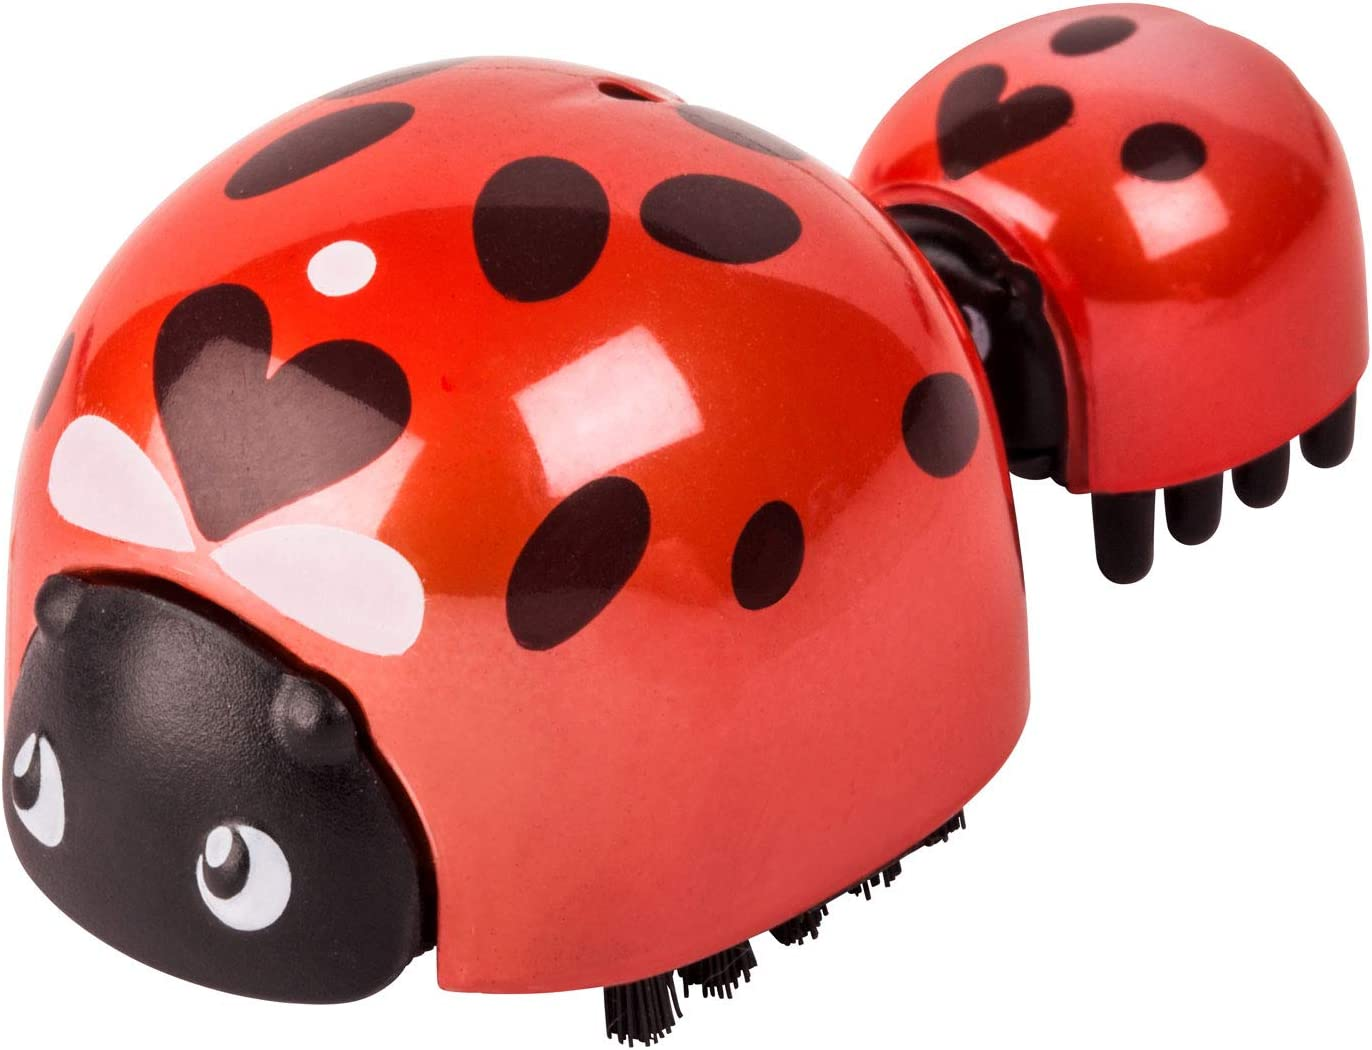 Little Live Pets Lil Ladybug & Baby - Assorted Colors and Designs